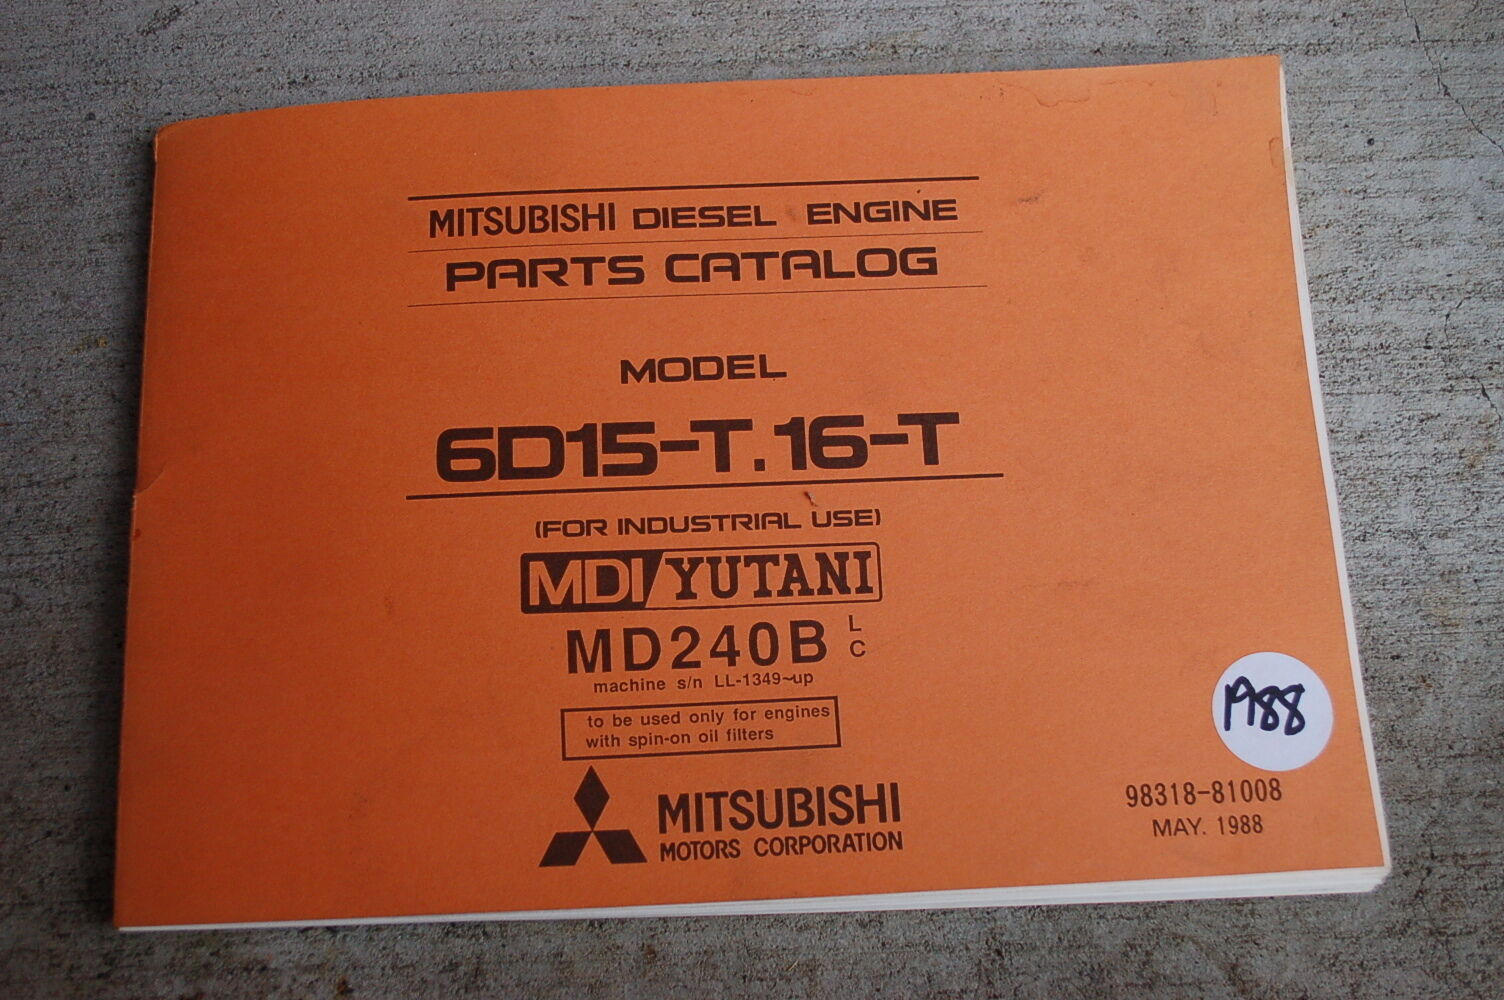 MITSUBISHI 6D15-T.16-T Diesel Engine Parts Manual book catalog list 1988 1  of 4Only 1 available See More